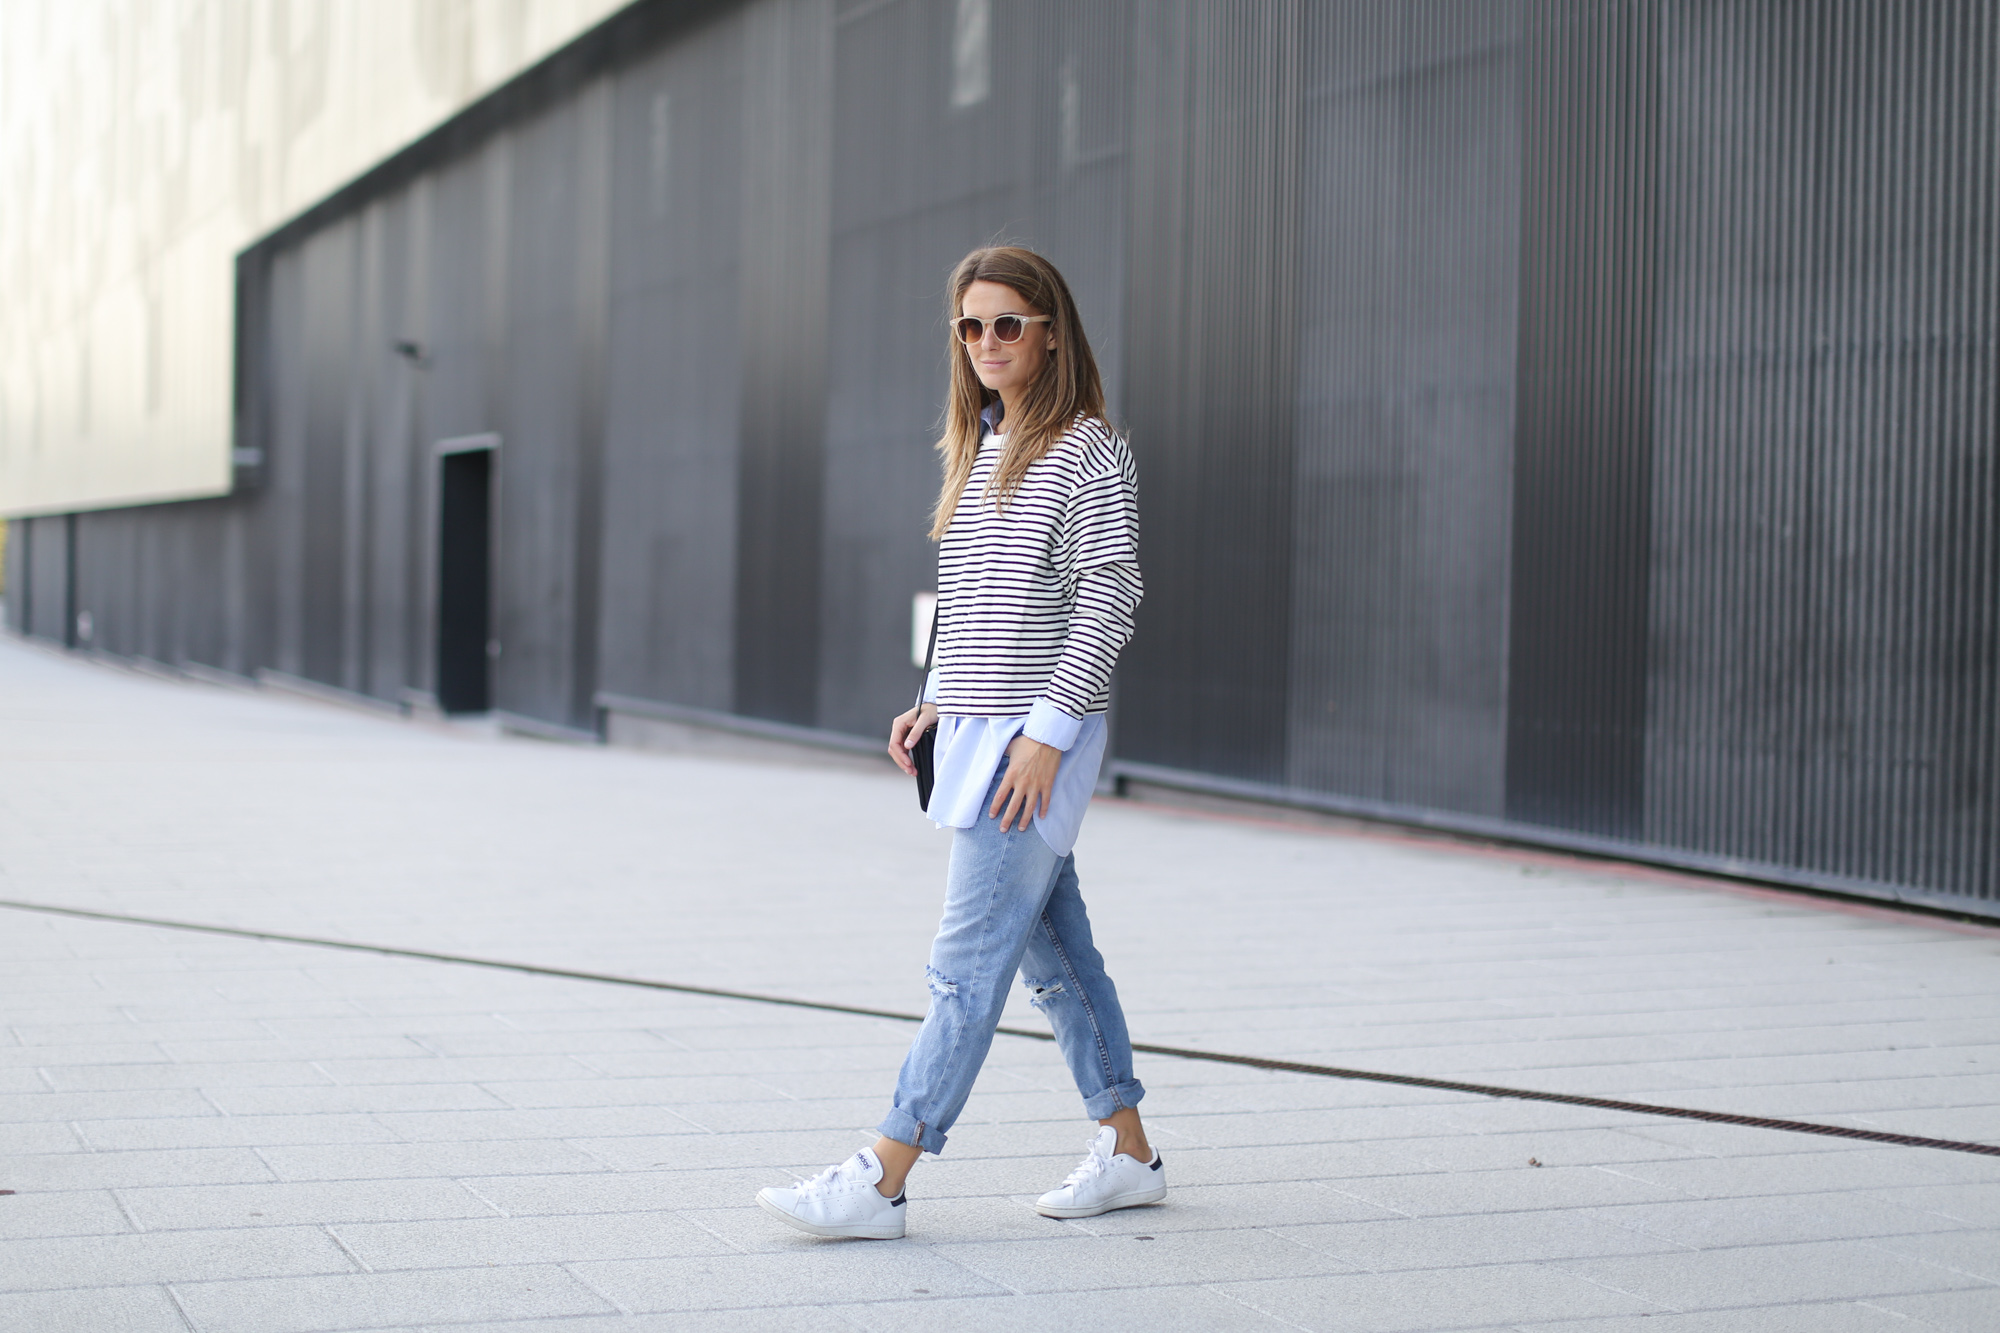 Clochet-streetstyle-suiteblanco-boyfriend-jeans-striped-sweater-adidas-stan-smith-17